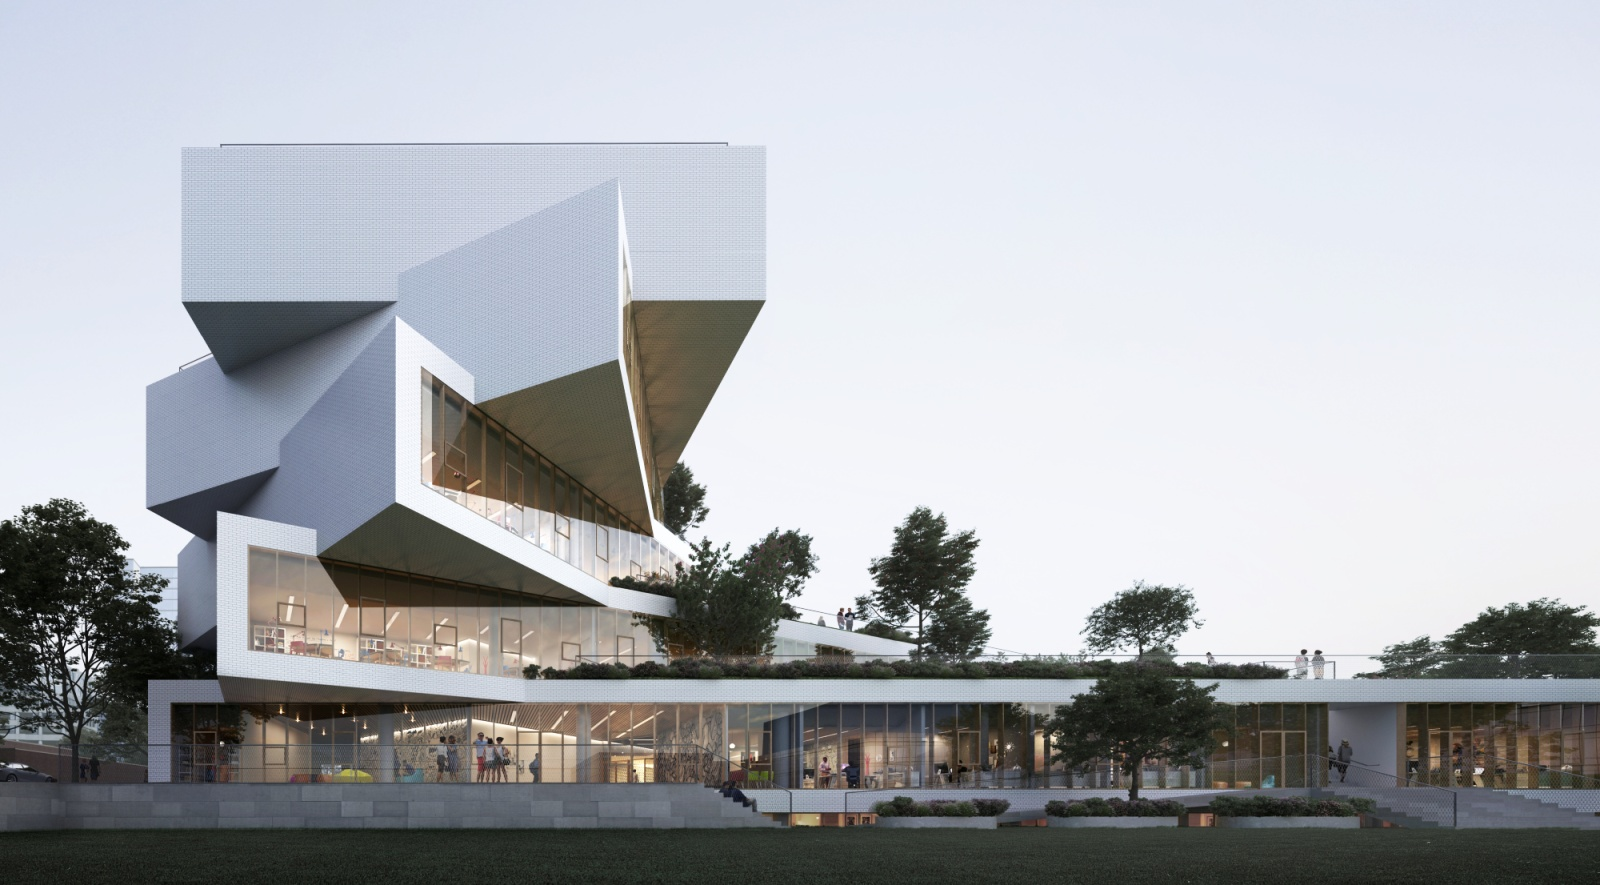 Wilson Secondary School By Big Bjarke Ingels Group